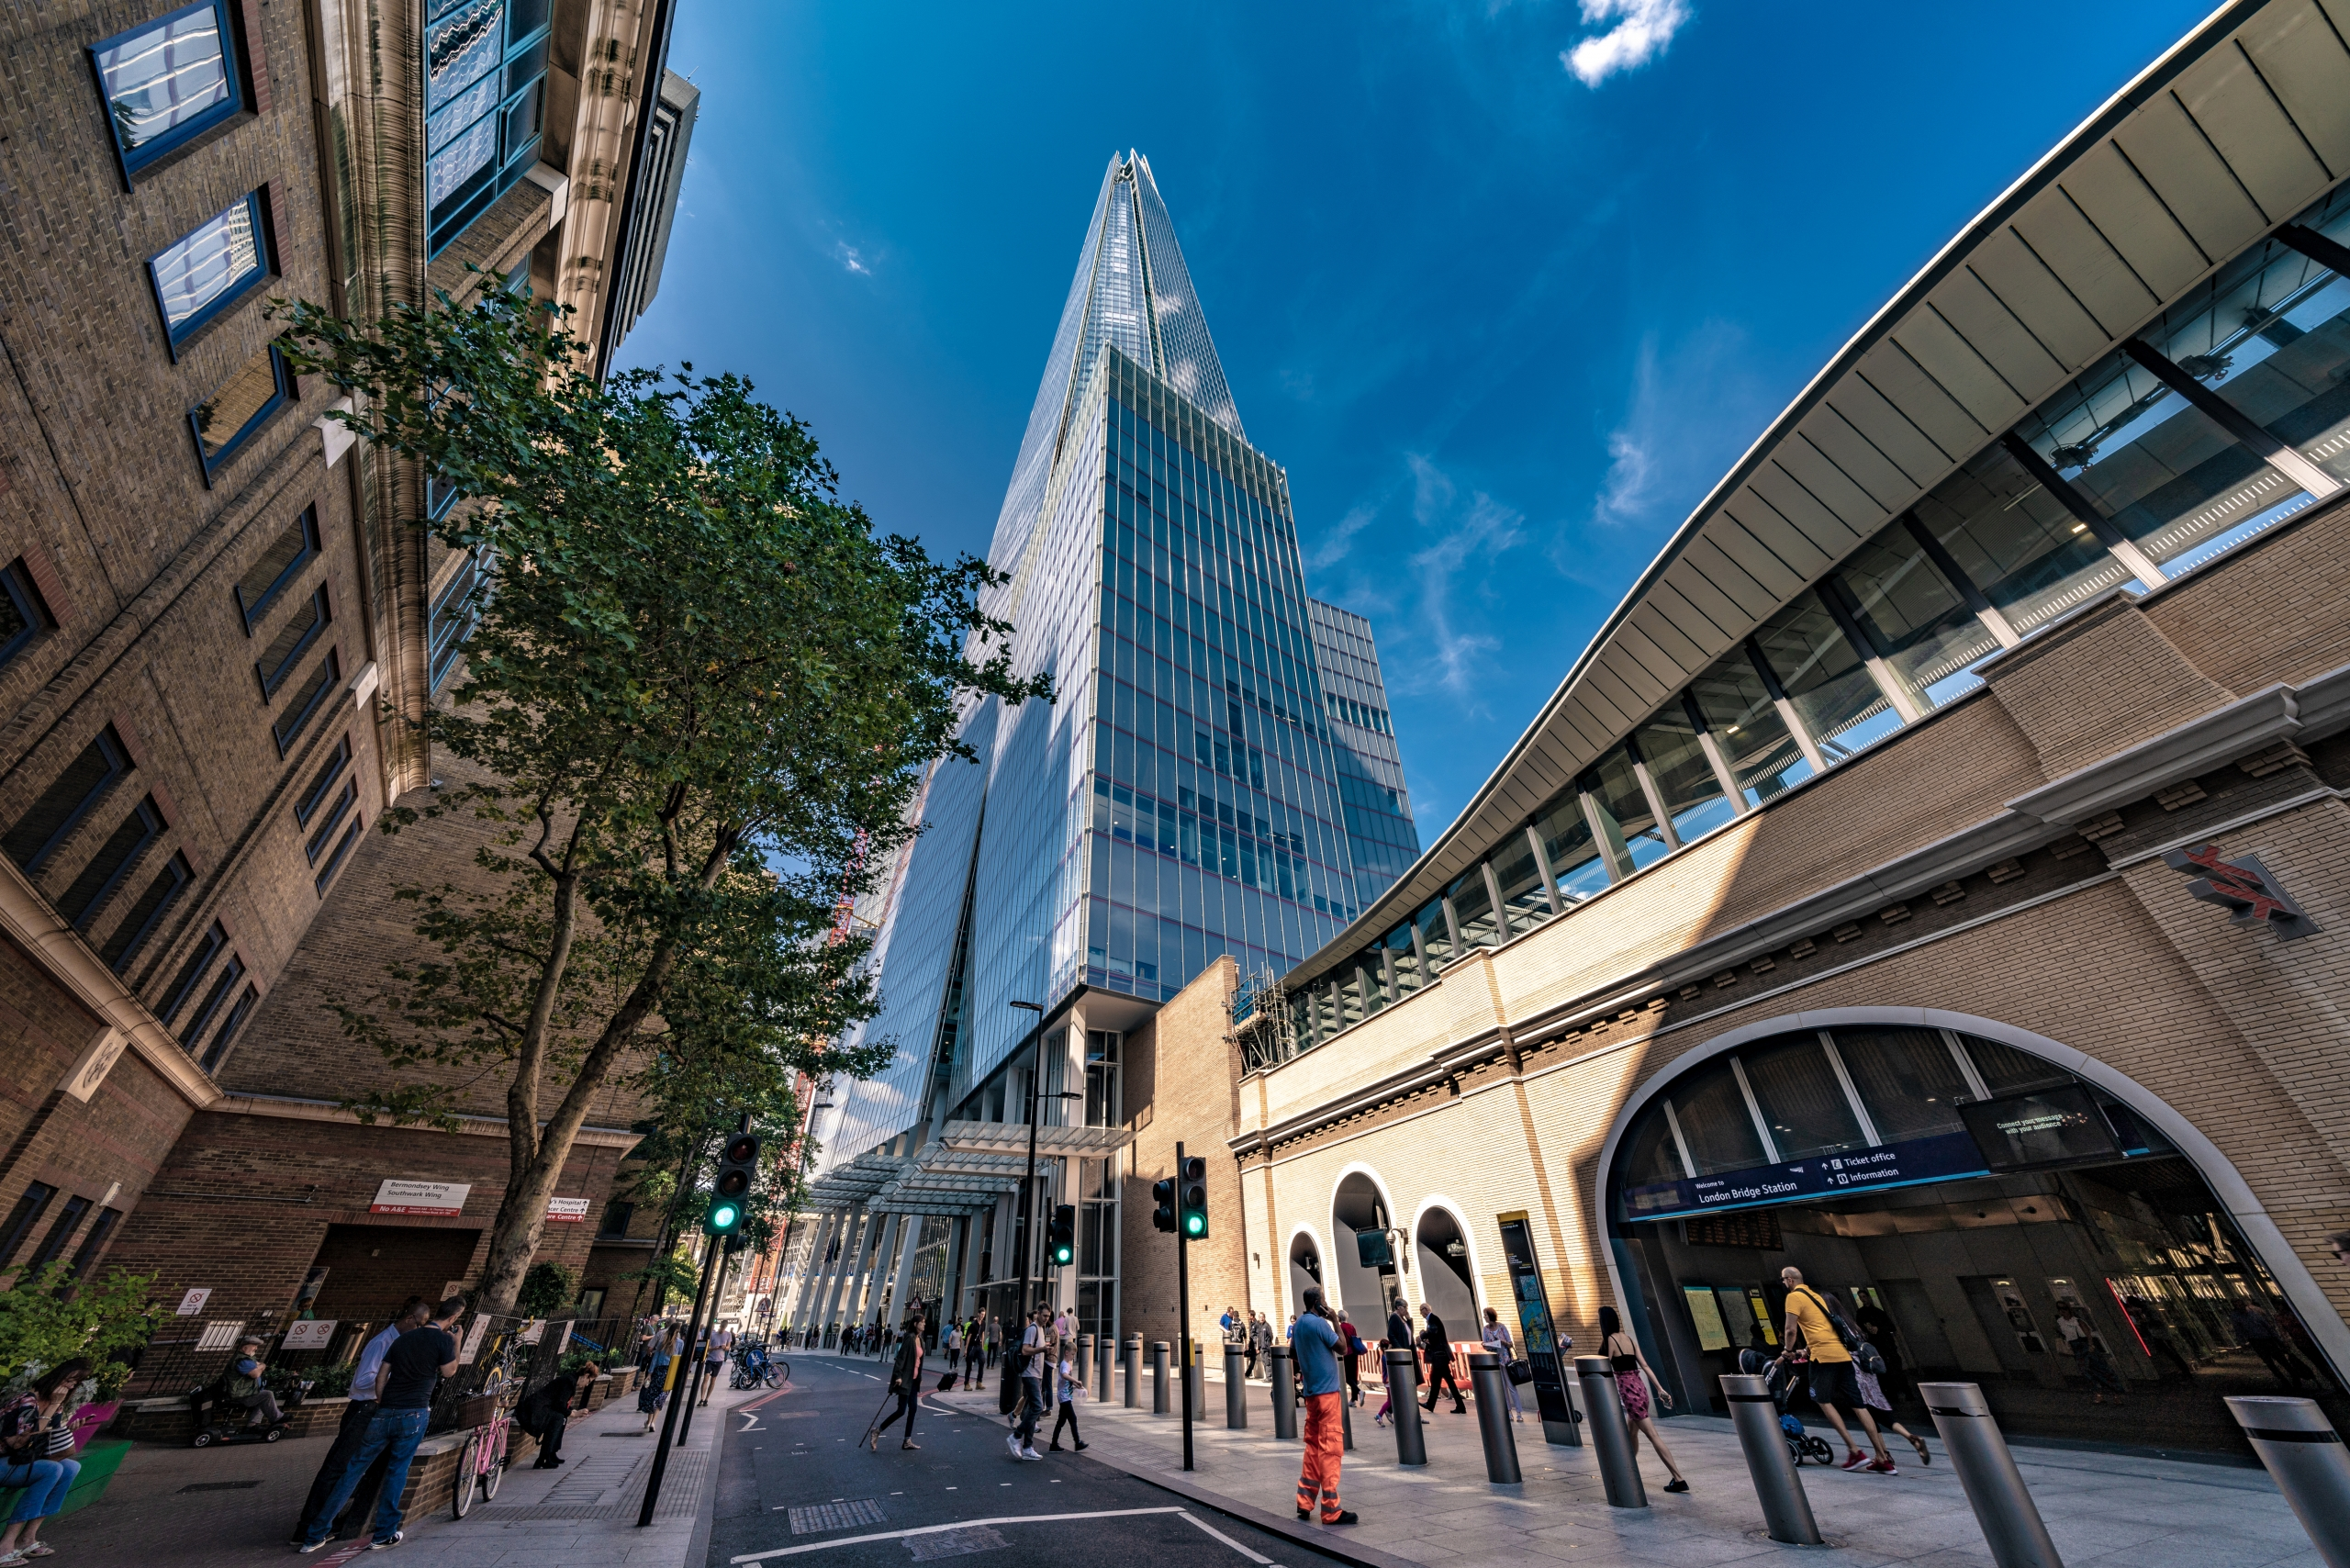 How to get to the Shard